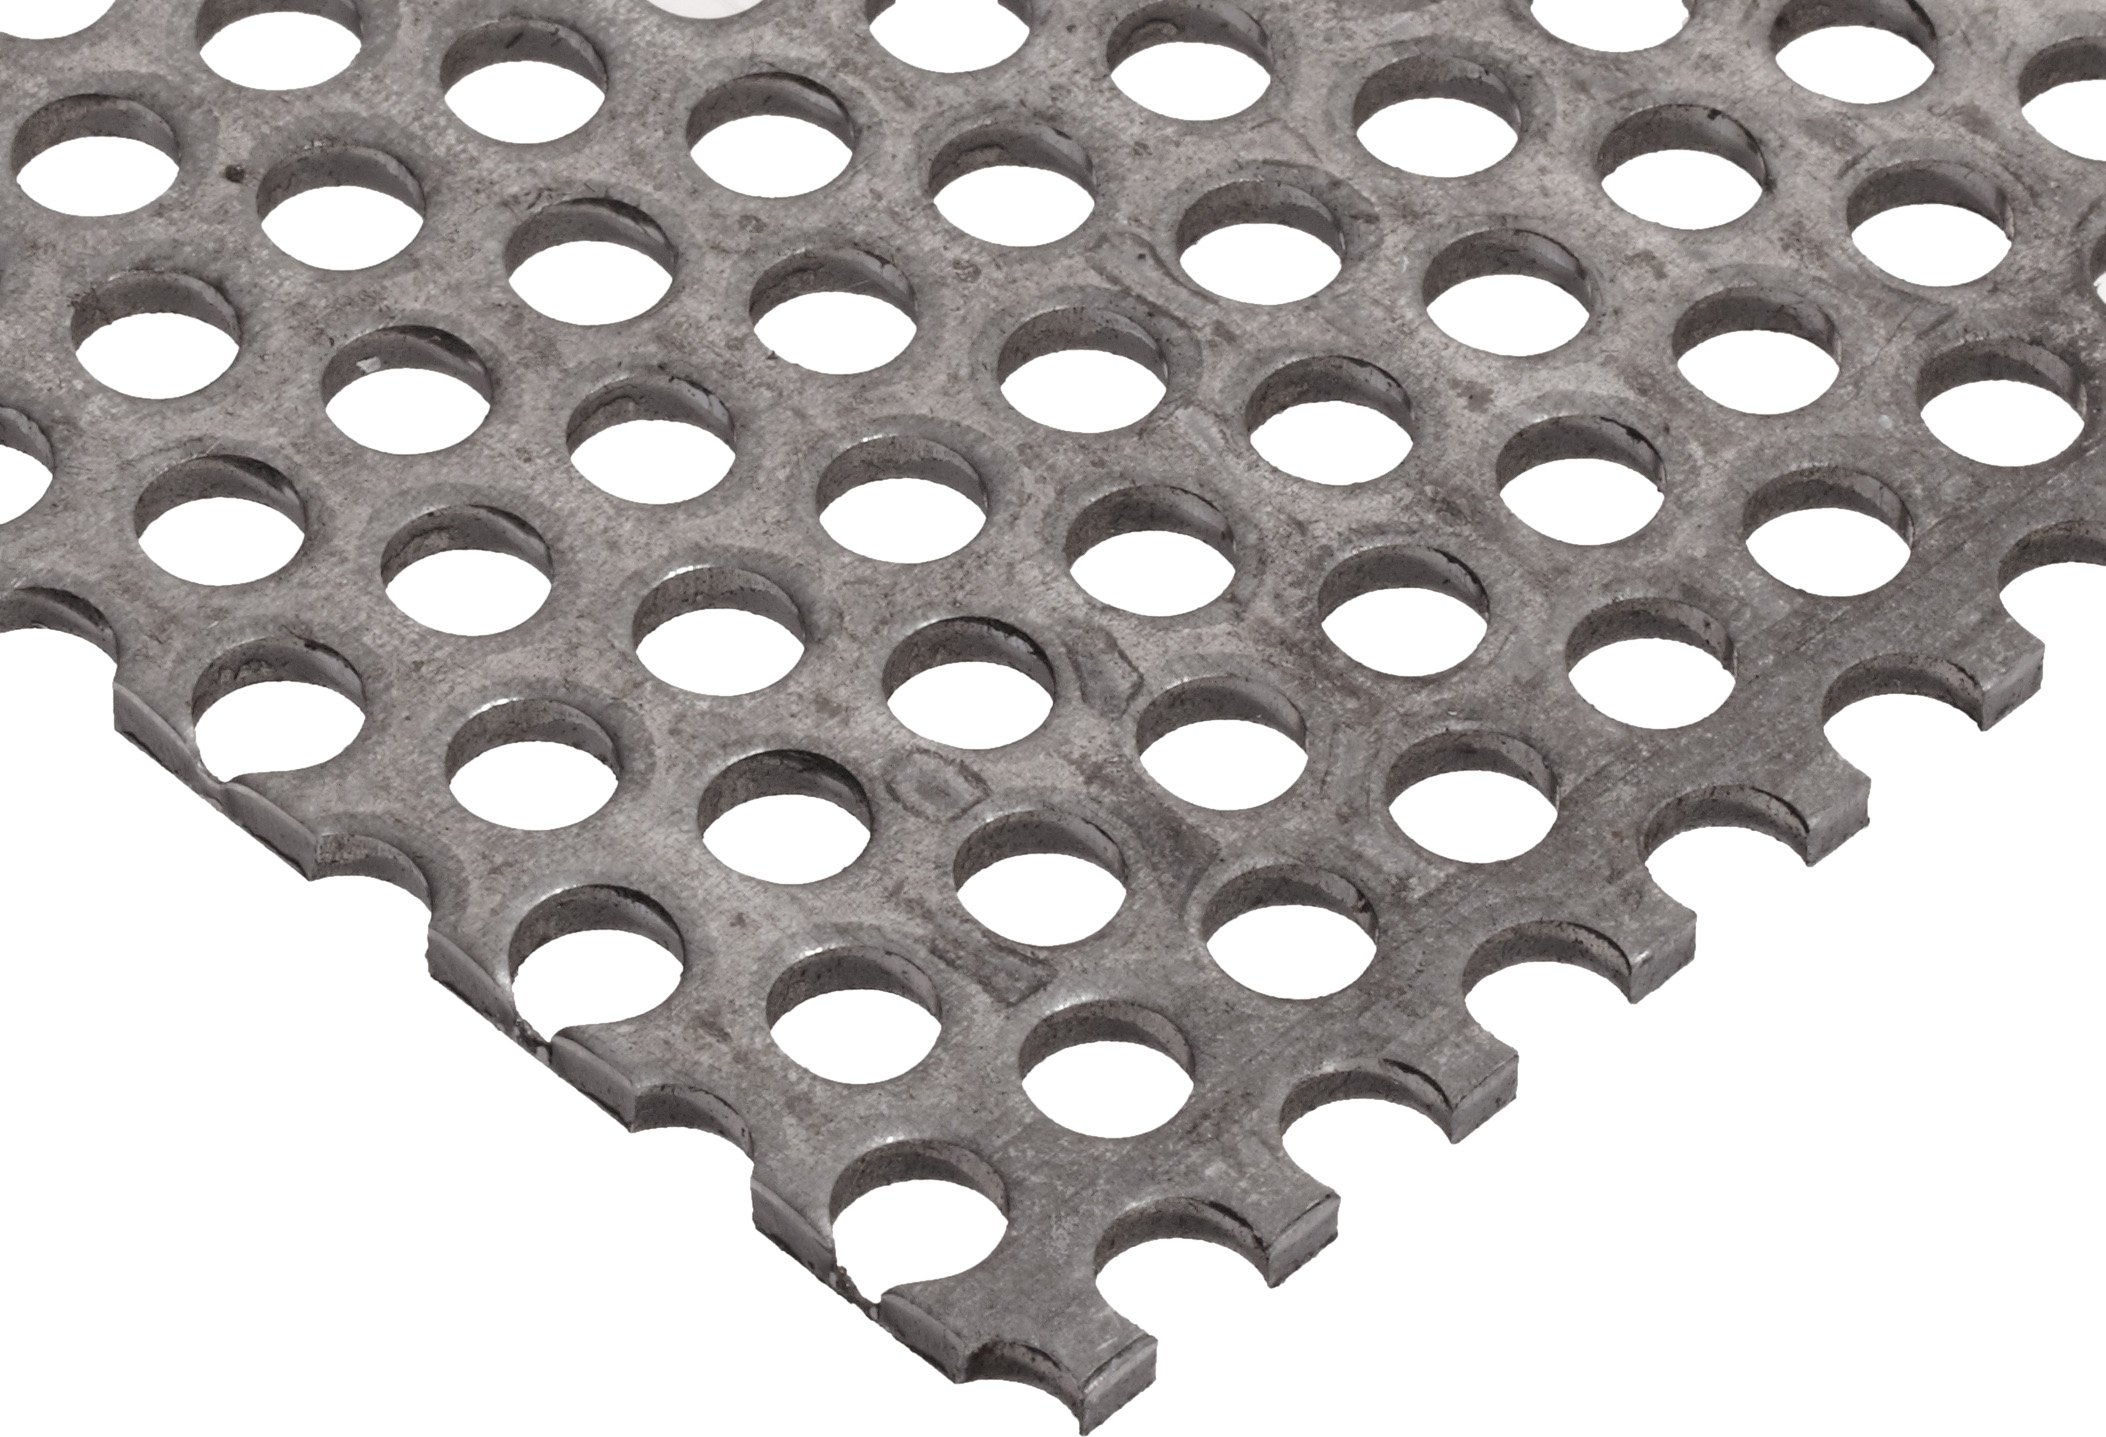 A36 Steel Perforated Sheet, Unpolished (Mill) Finish, Hot Rolled, Staggered 0.125'' Holes, ASTM A36, 0.036'' Thickness, 20 Gauge, 12'' Width, 12'' Length, 0.1875'' Center to Center